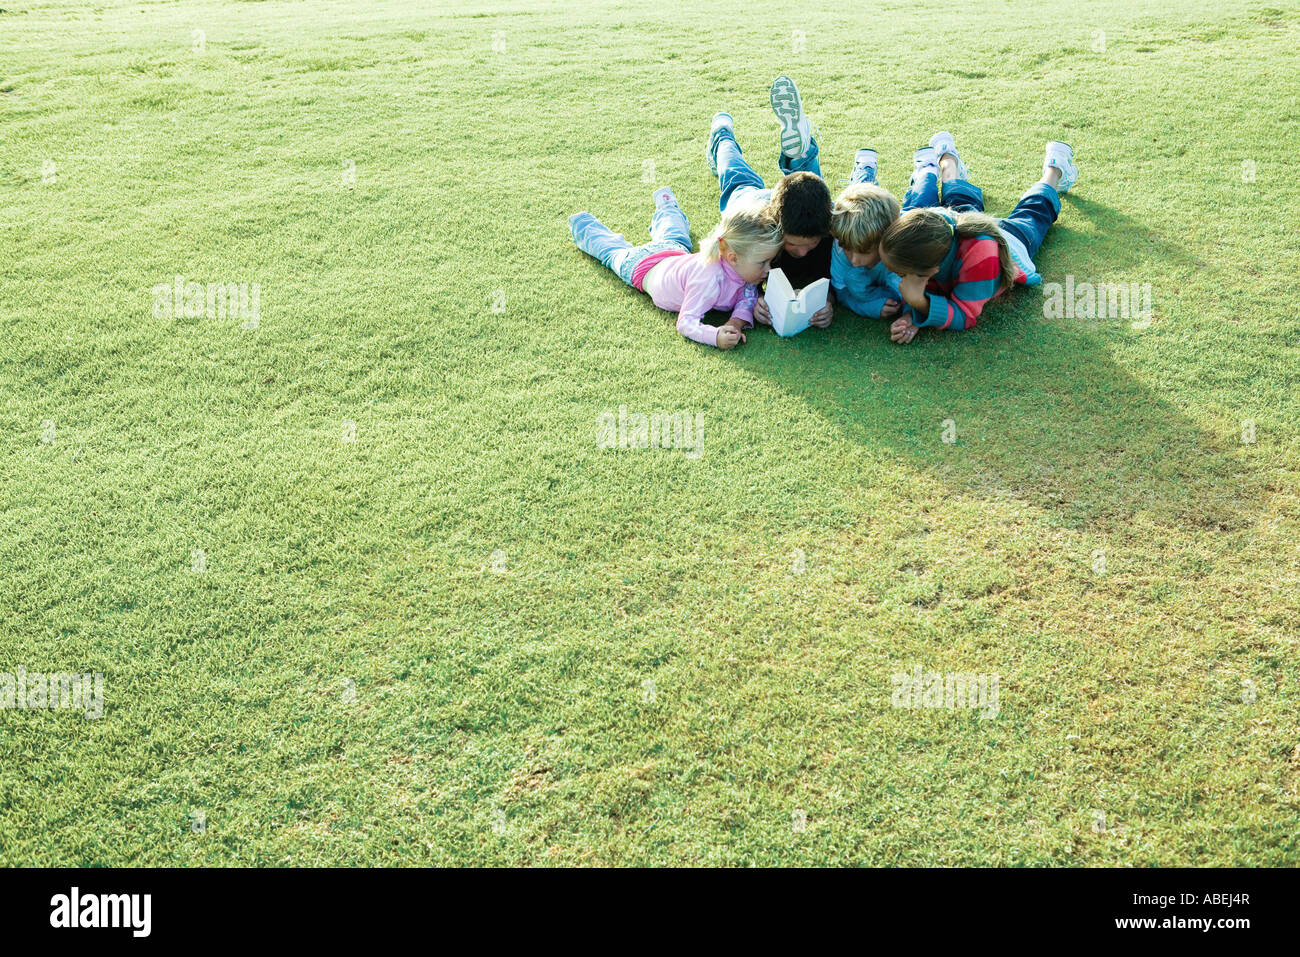 Children lying on grass, reading book together - Stock Image